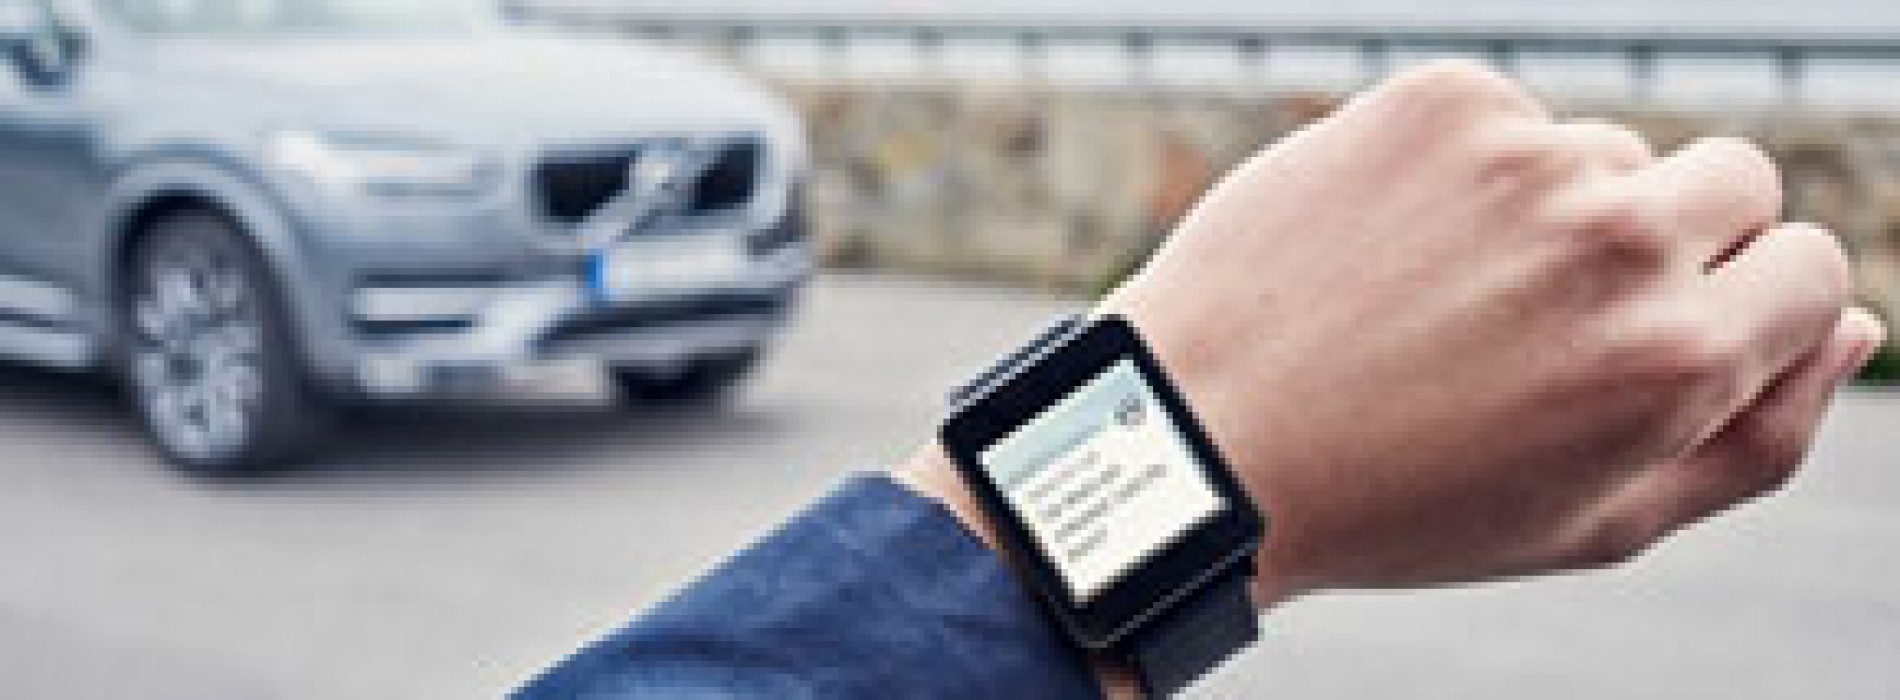 Controla tu auto desde tu apple watch